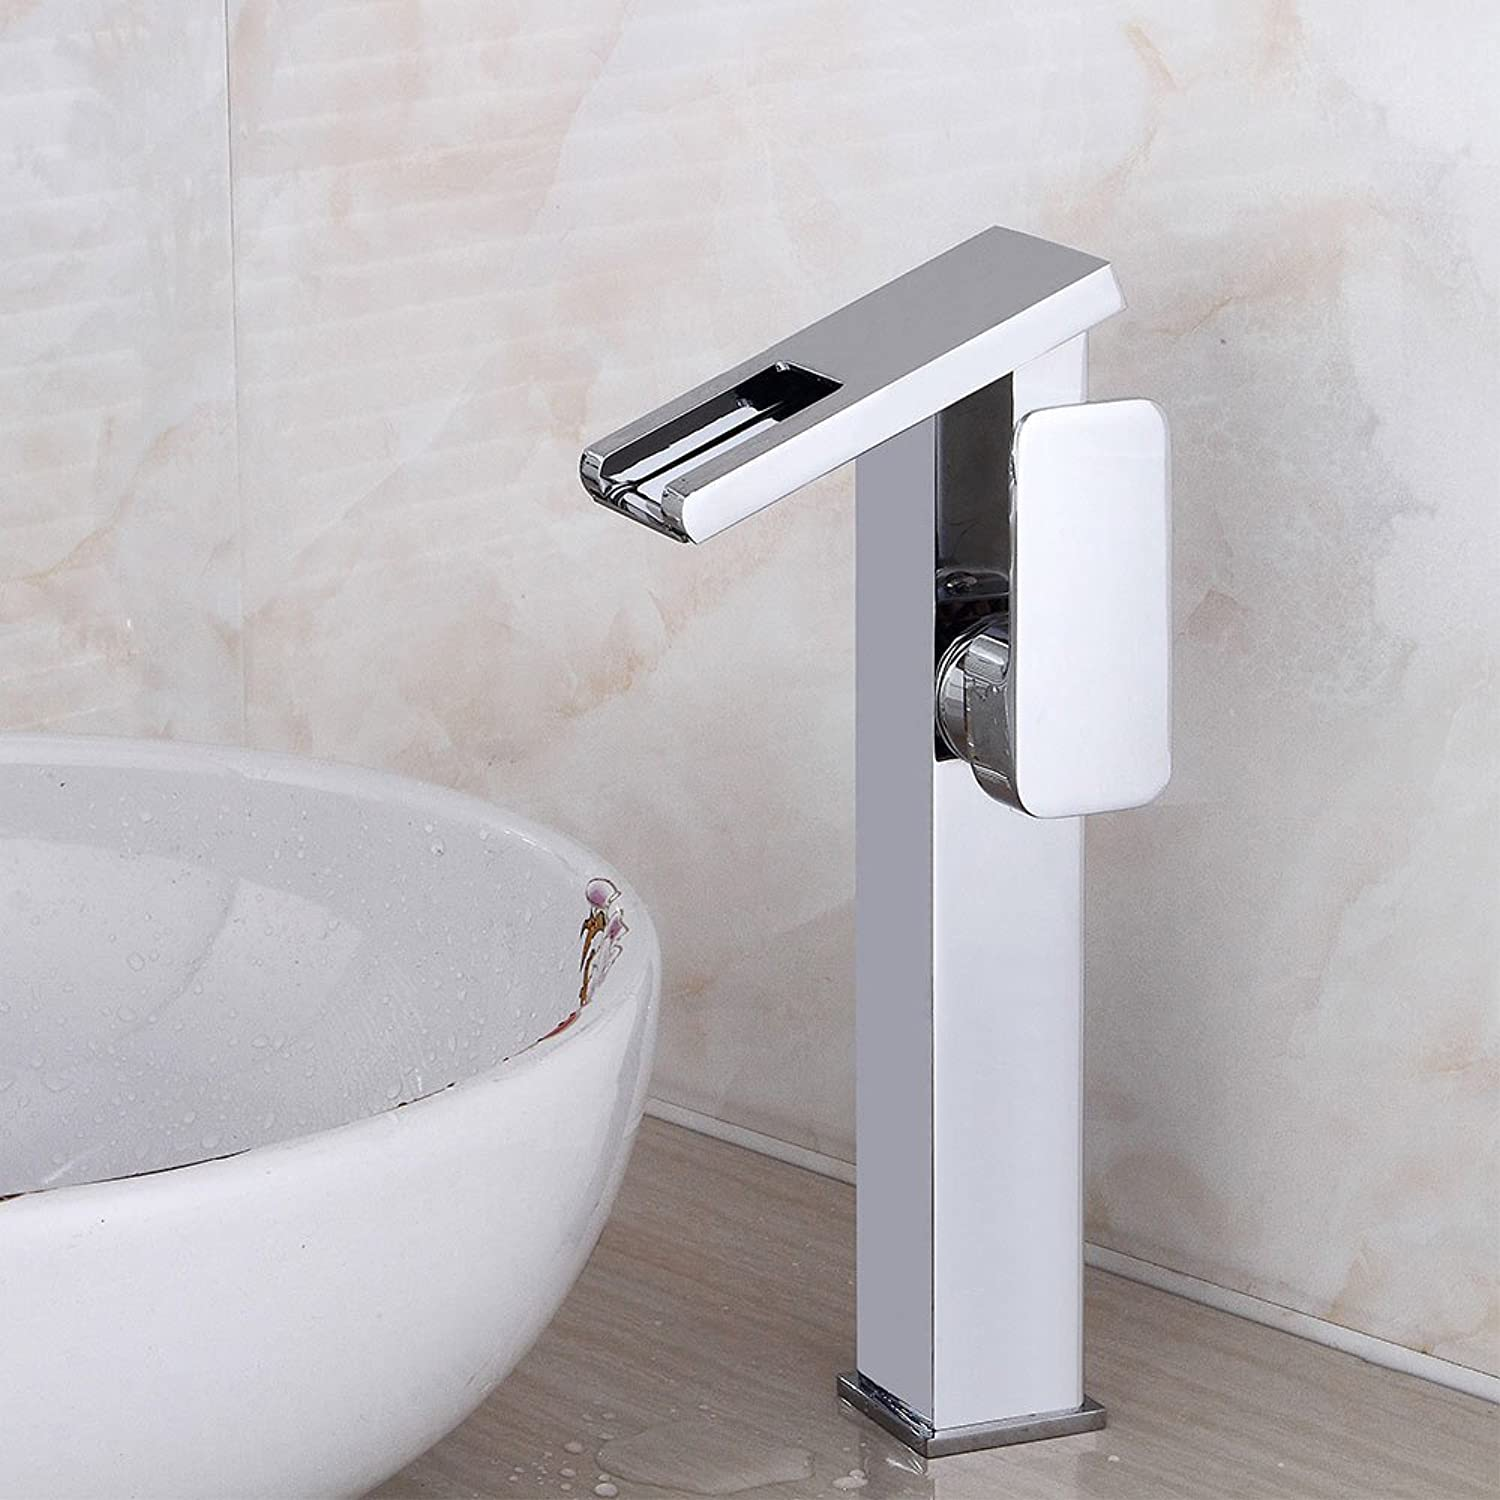 Kitchen & Bath Fixtures Taps Faucet,Electroplating Basin Faucet Led Waterfall Faucet Above Counter Basin Hot and Cold Faucet Bathroom Single Hole Copper Faucet